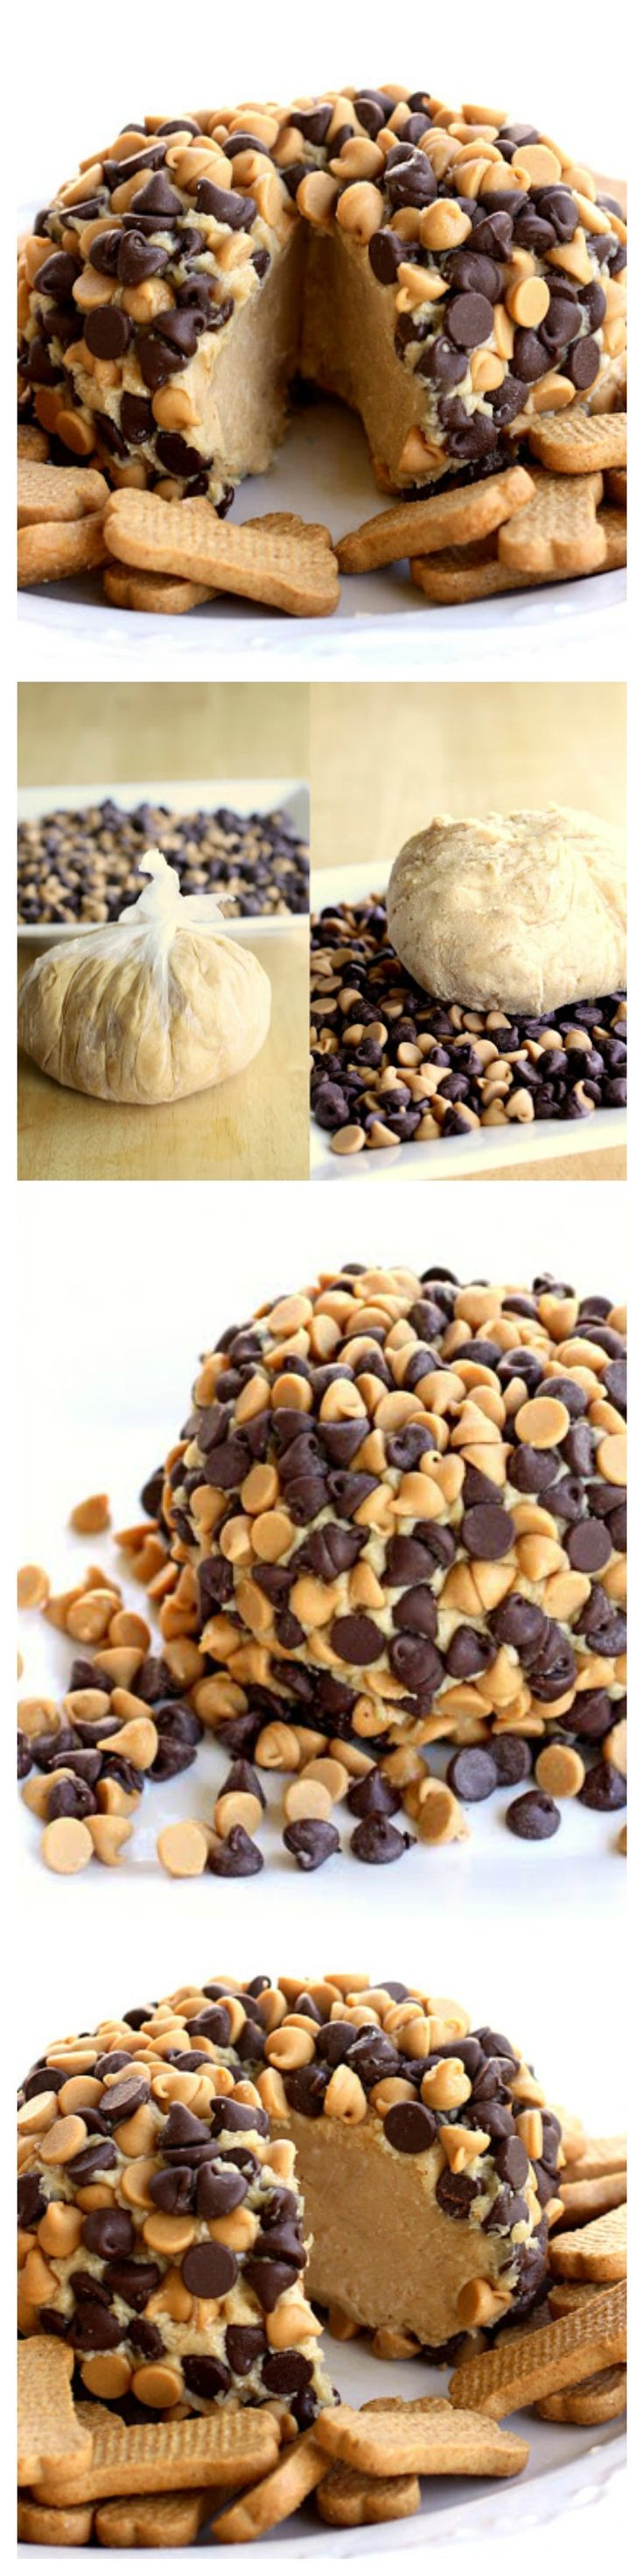 "This Peanut Butter ""Cheese"" Ball is a creamy peanut butter mixture rolled in chocolate chips and peanut butter chips. Serve with graham crackers or apples for a sure hit! the-girl-who-ate-everything.com"